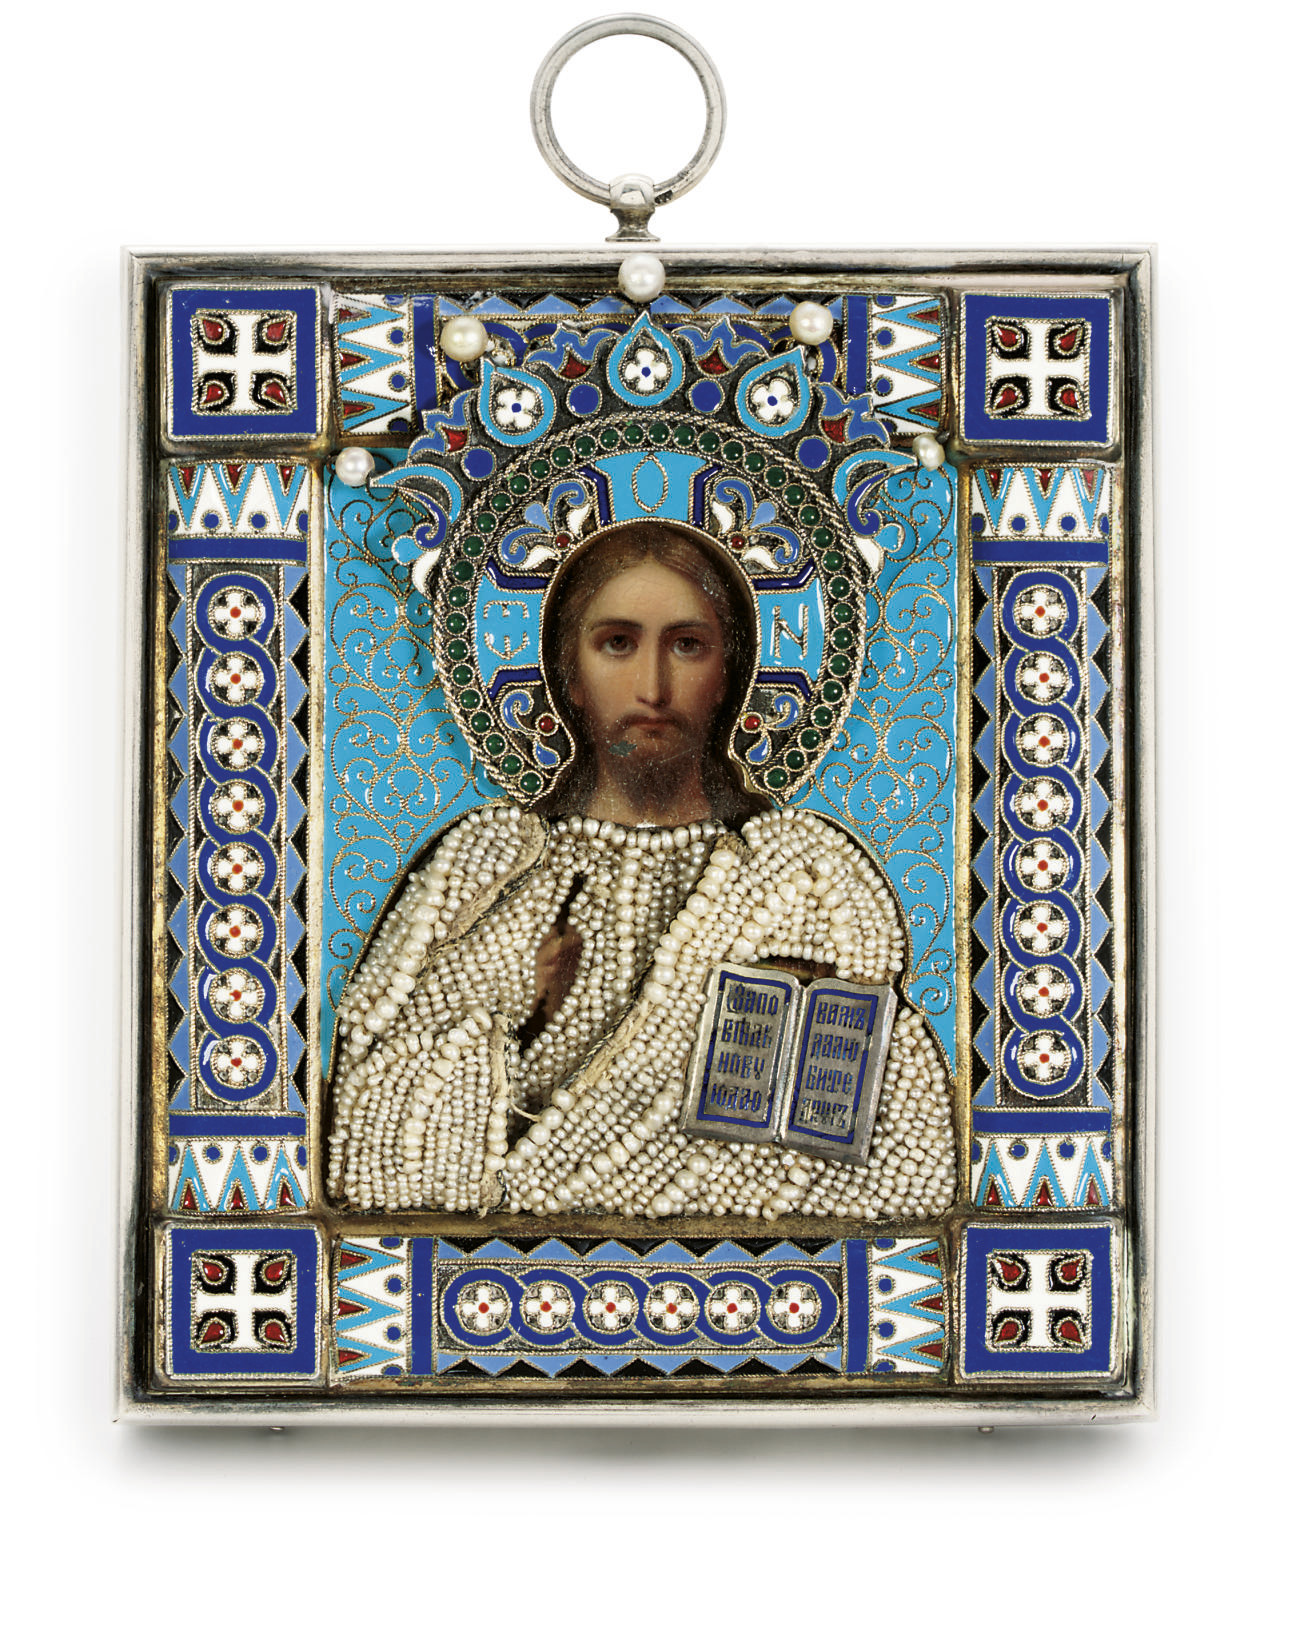 A silver, cloisonné enamel and seed-pearl icon